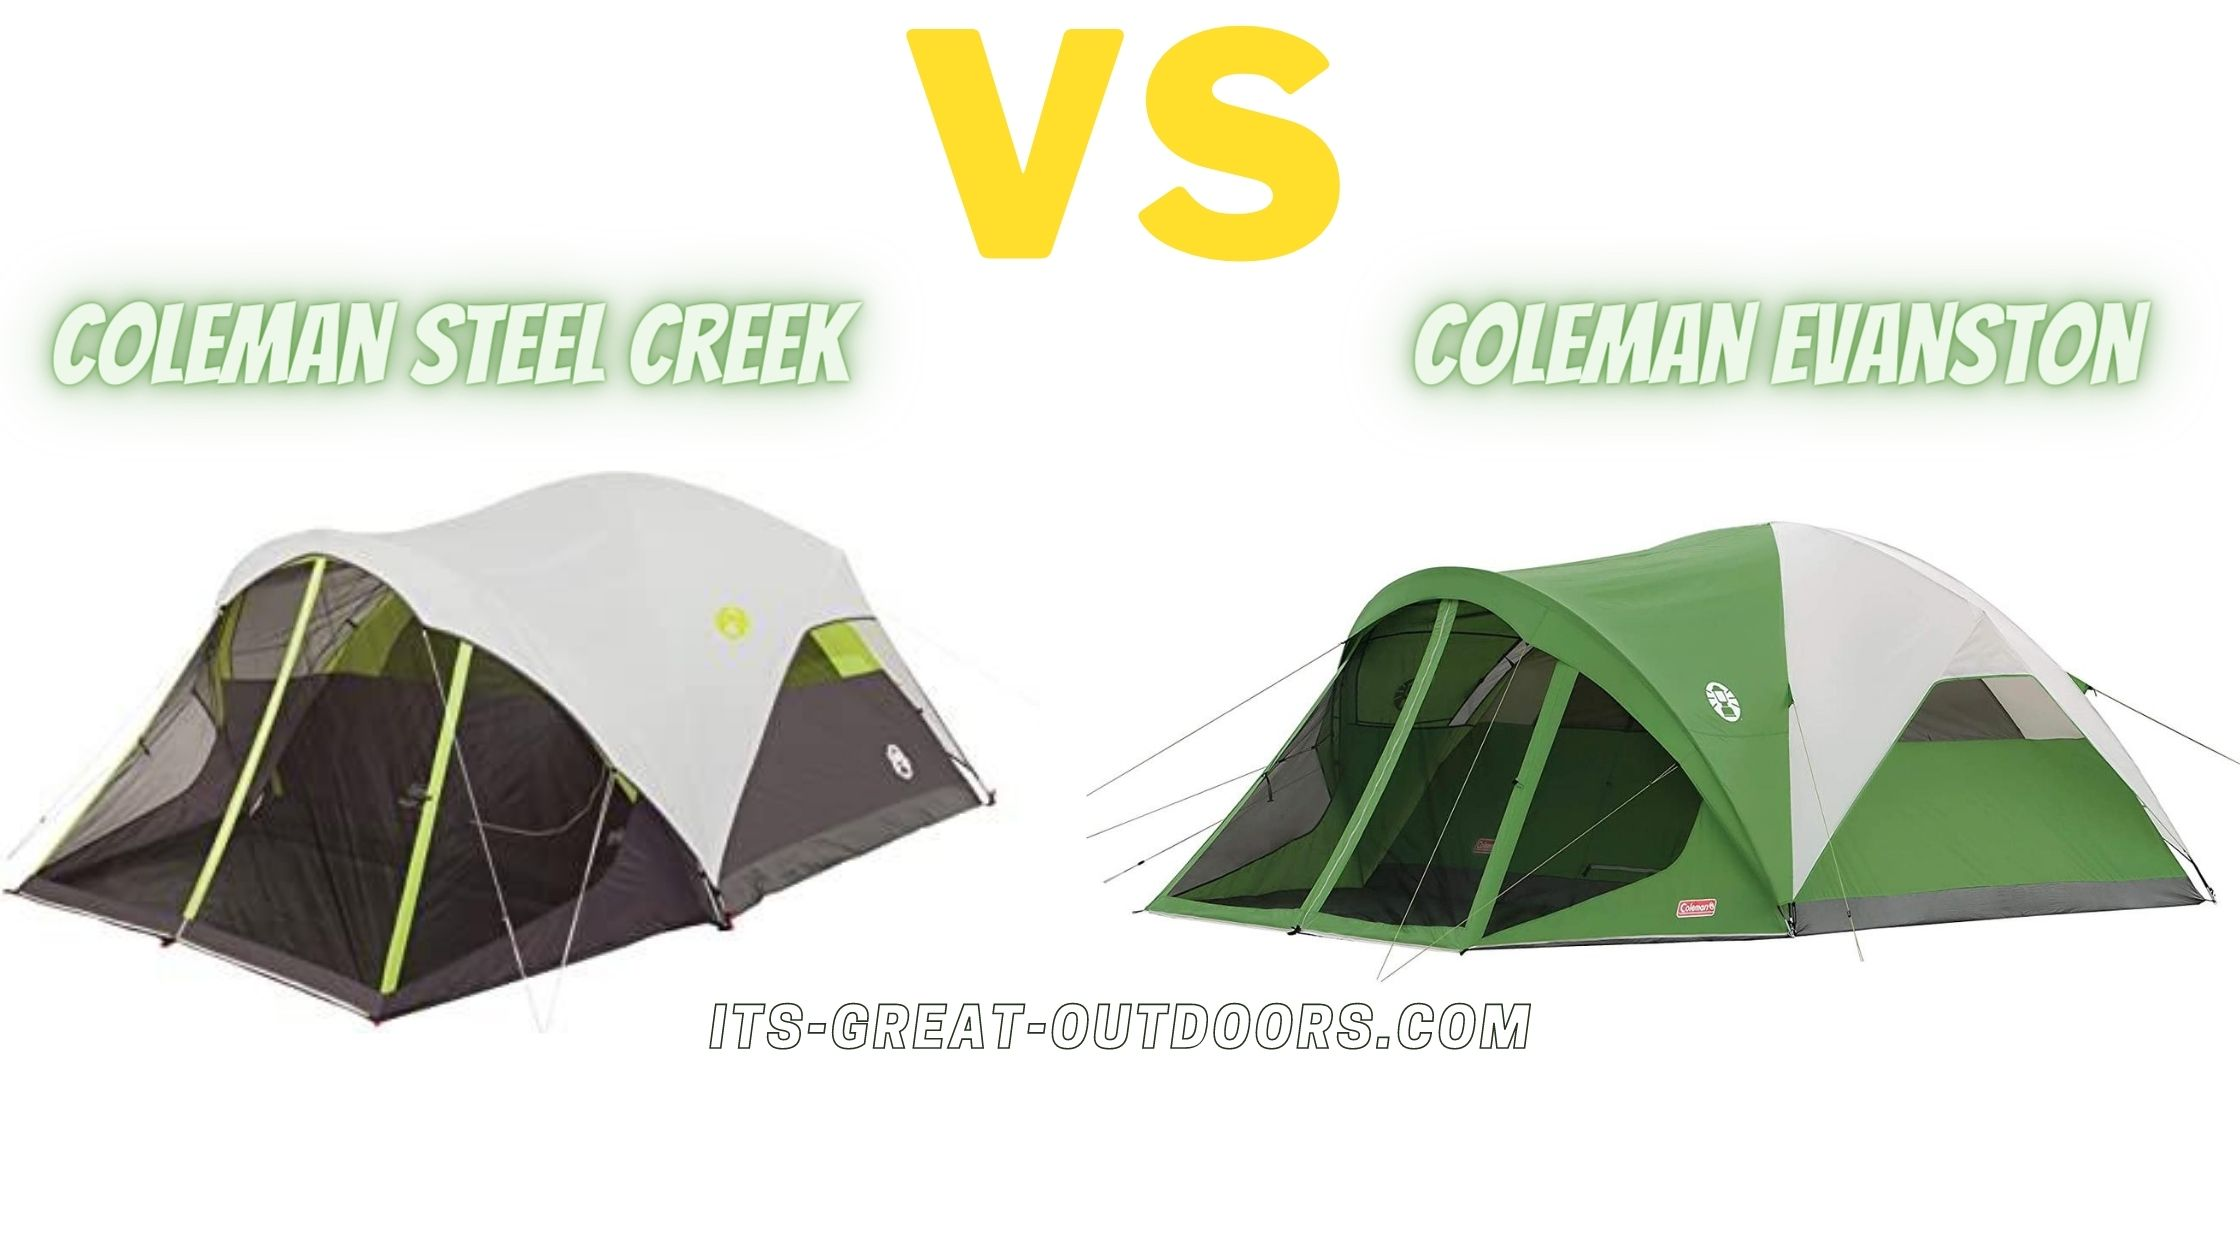 Coleman Evanston vs Steel Creek Comparison